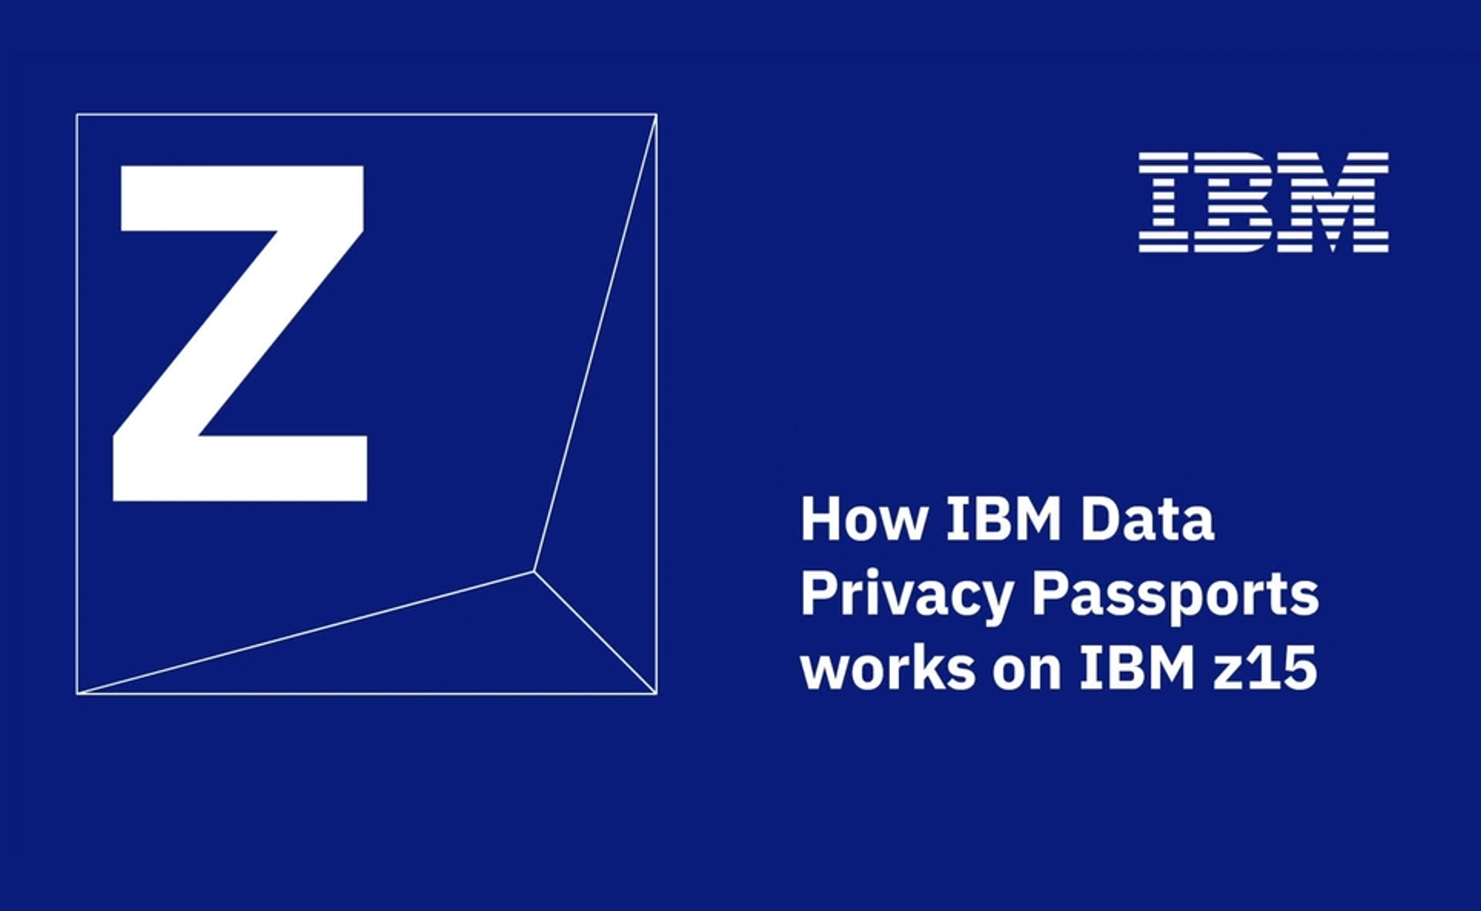 Video thumbnail - How IBM Data Privacy Passports Works on IBM Z